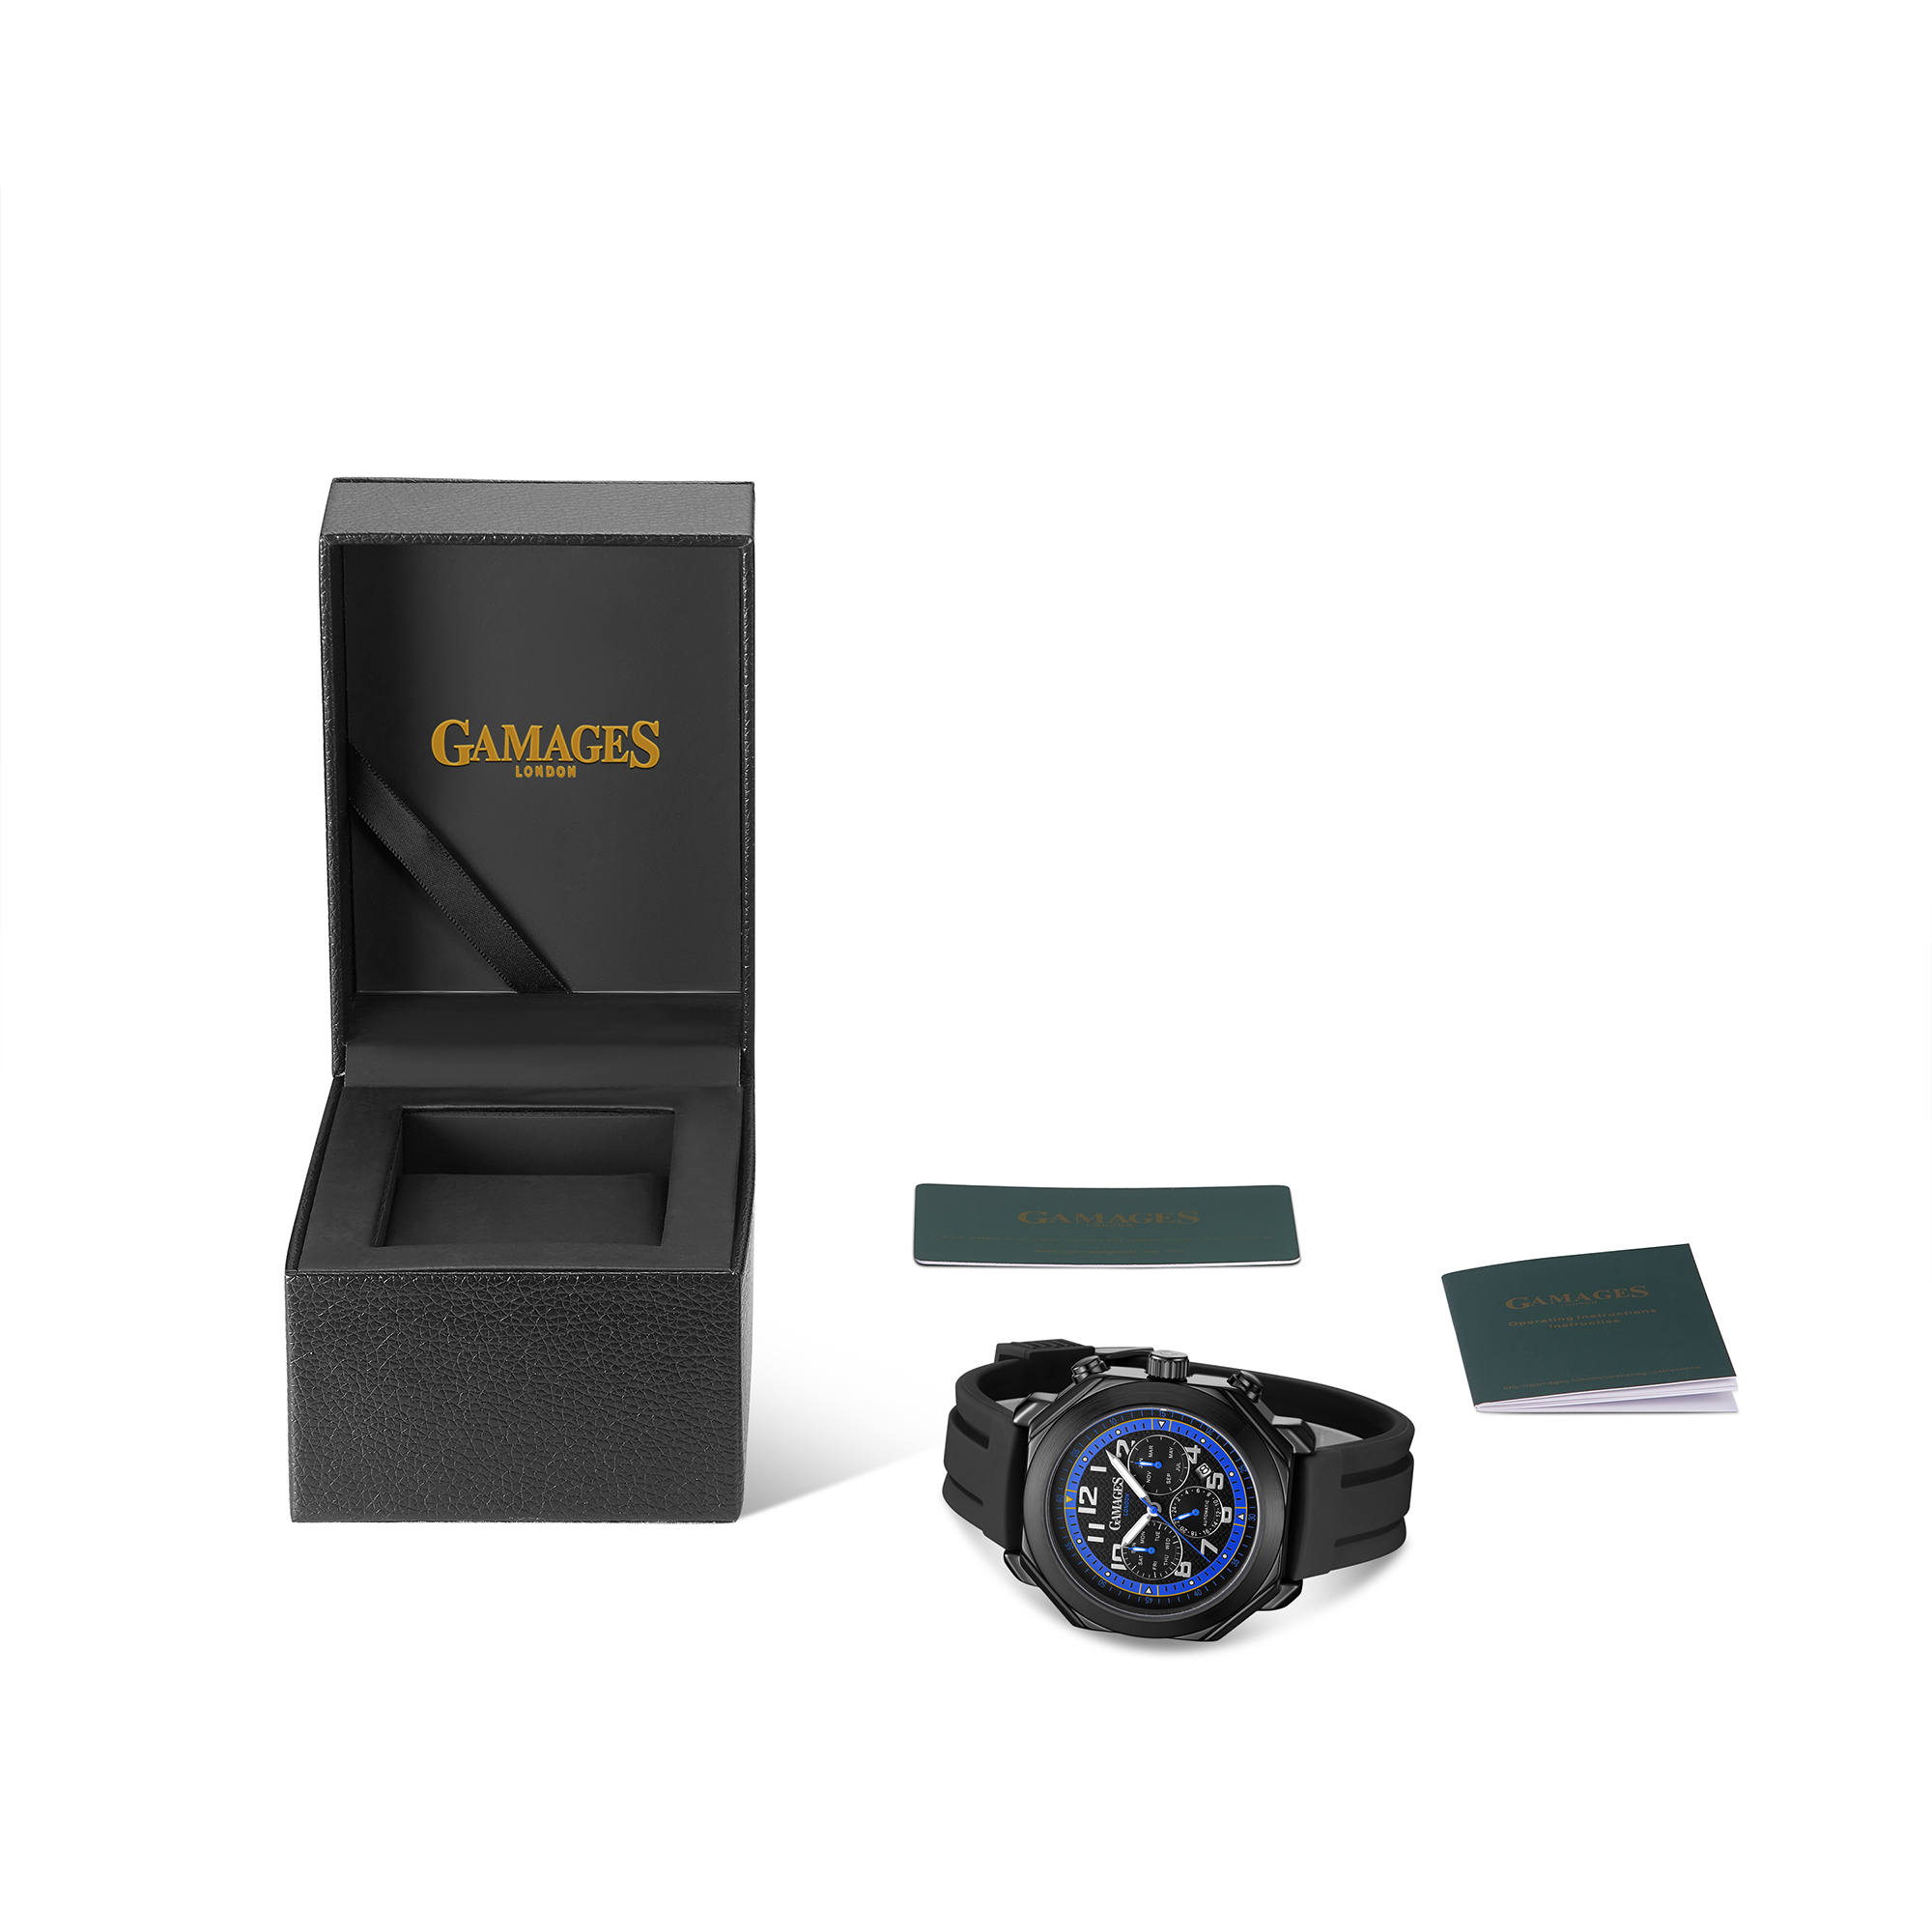 Ltd Edition Hand Assembled GAMAGES Contemporary Automatic Blue – 5 Year Warranty & Free Delivery - Image 2 of 4